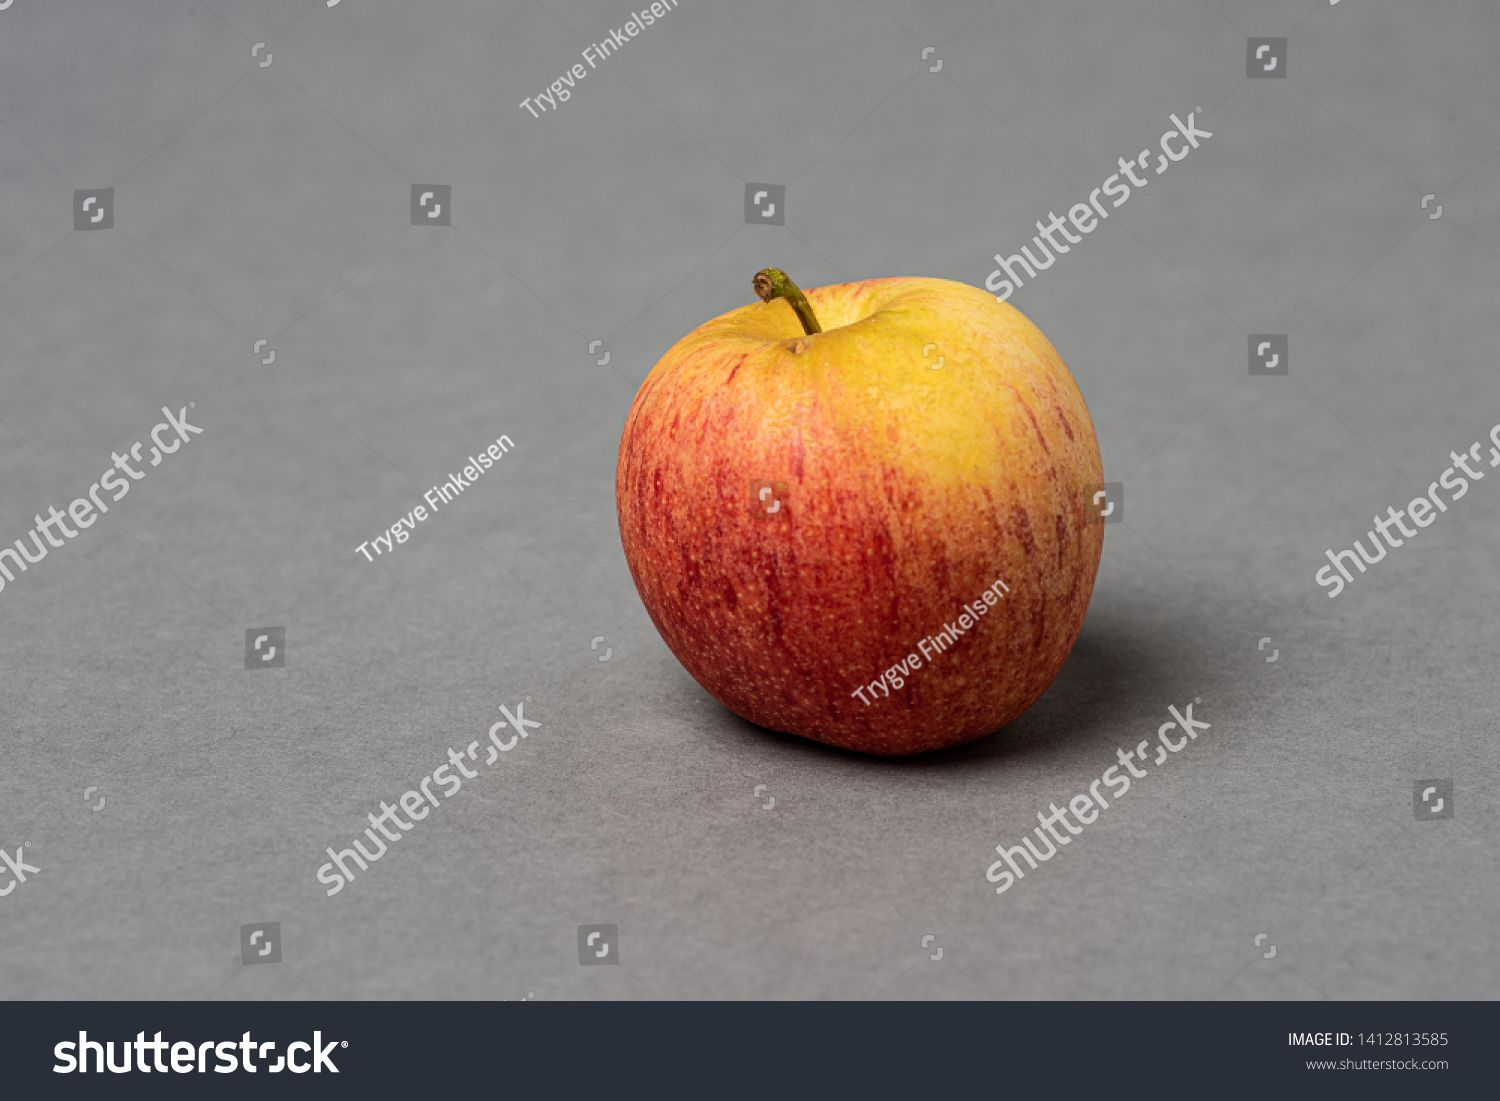 Red And Yellow Apple On Grey Background Ad Paid Yellow Red Apple Background In 2020 Apple Background Yellow Apple Red Apple